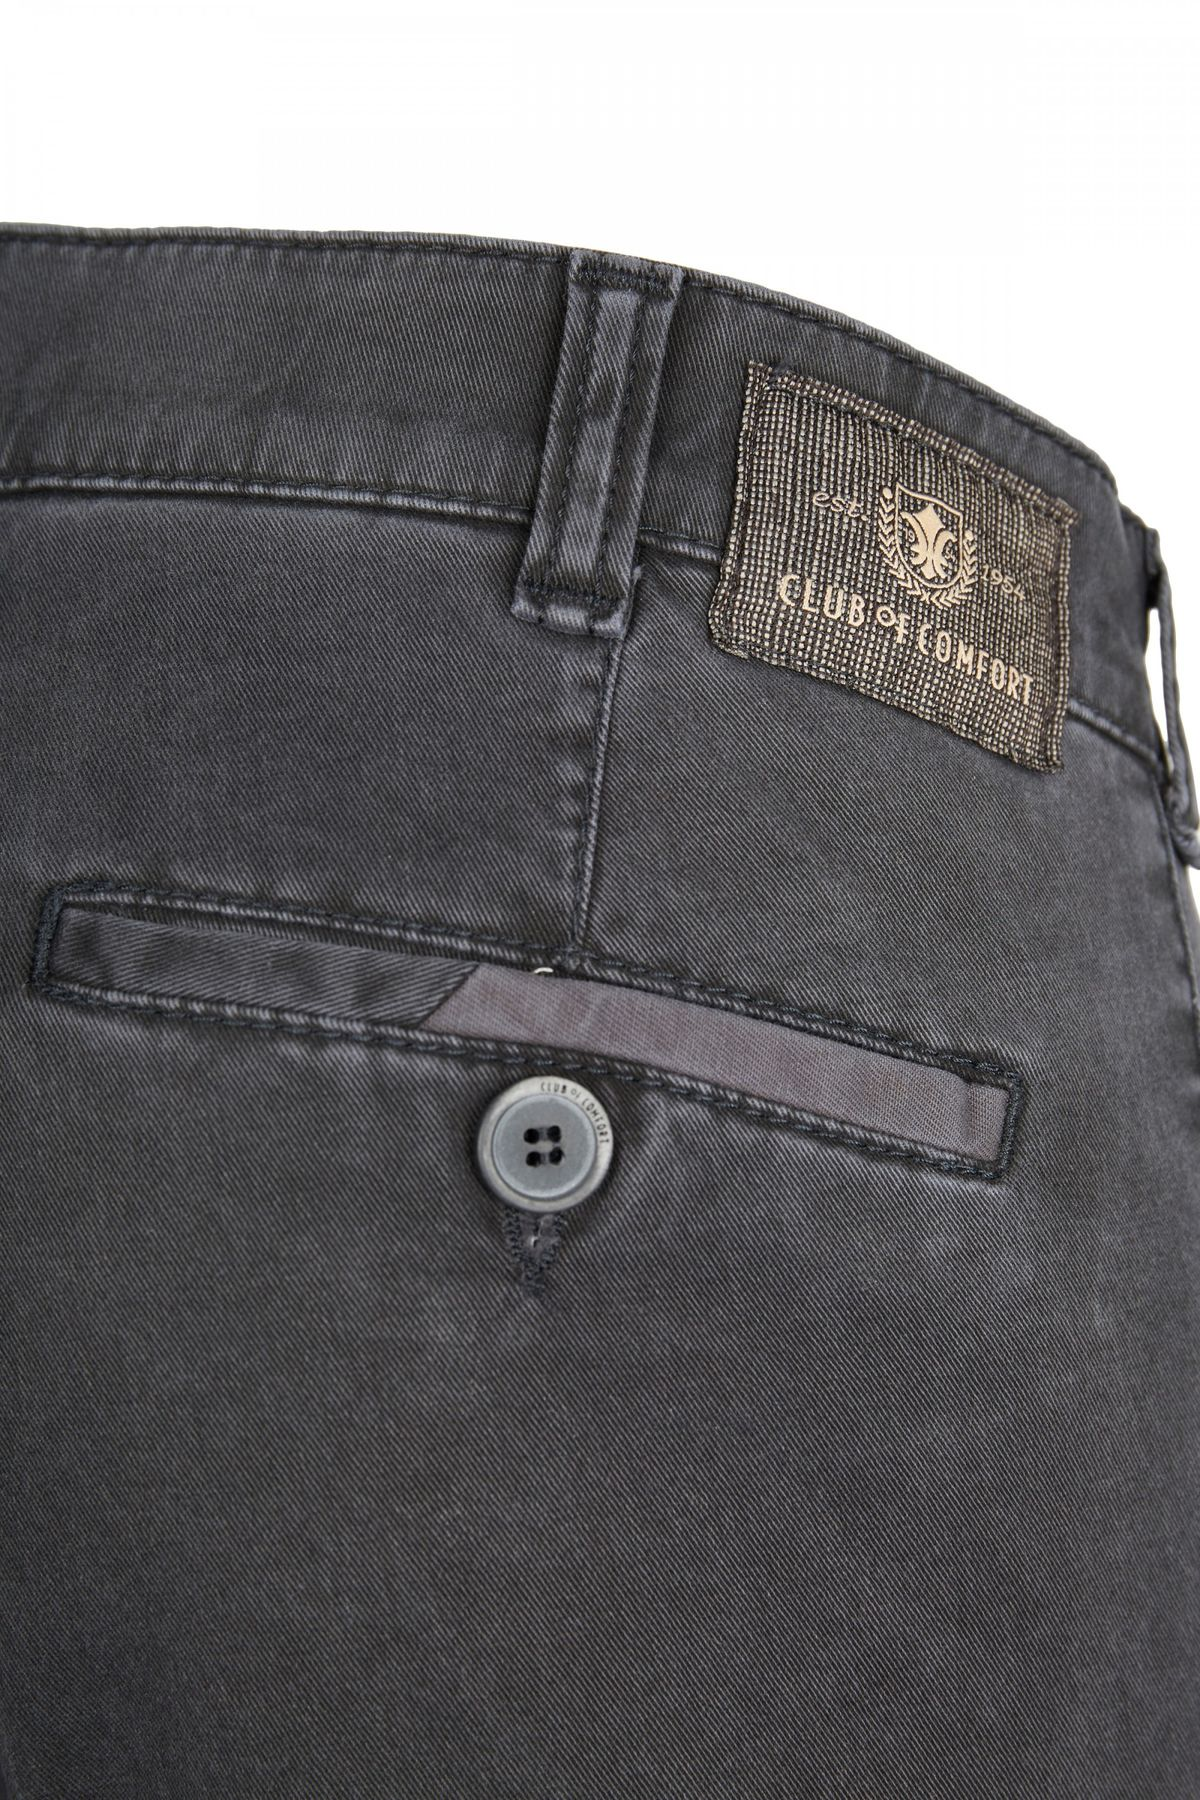 Club of Comfort - Herren Five Pocket Hose in Dunkelbraun oder Anthrazit, Keno (6421) – Bild 4